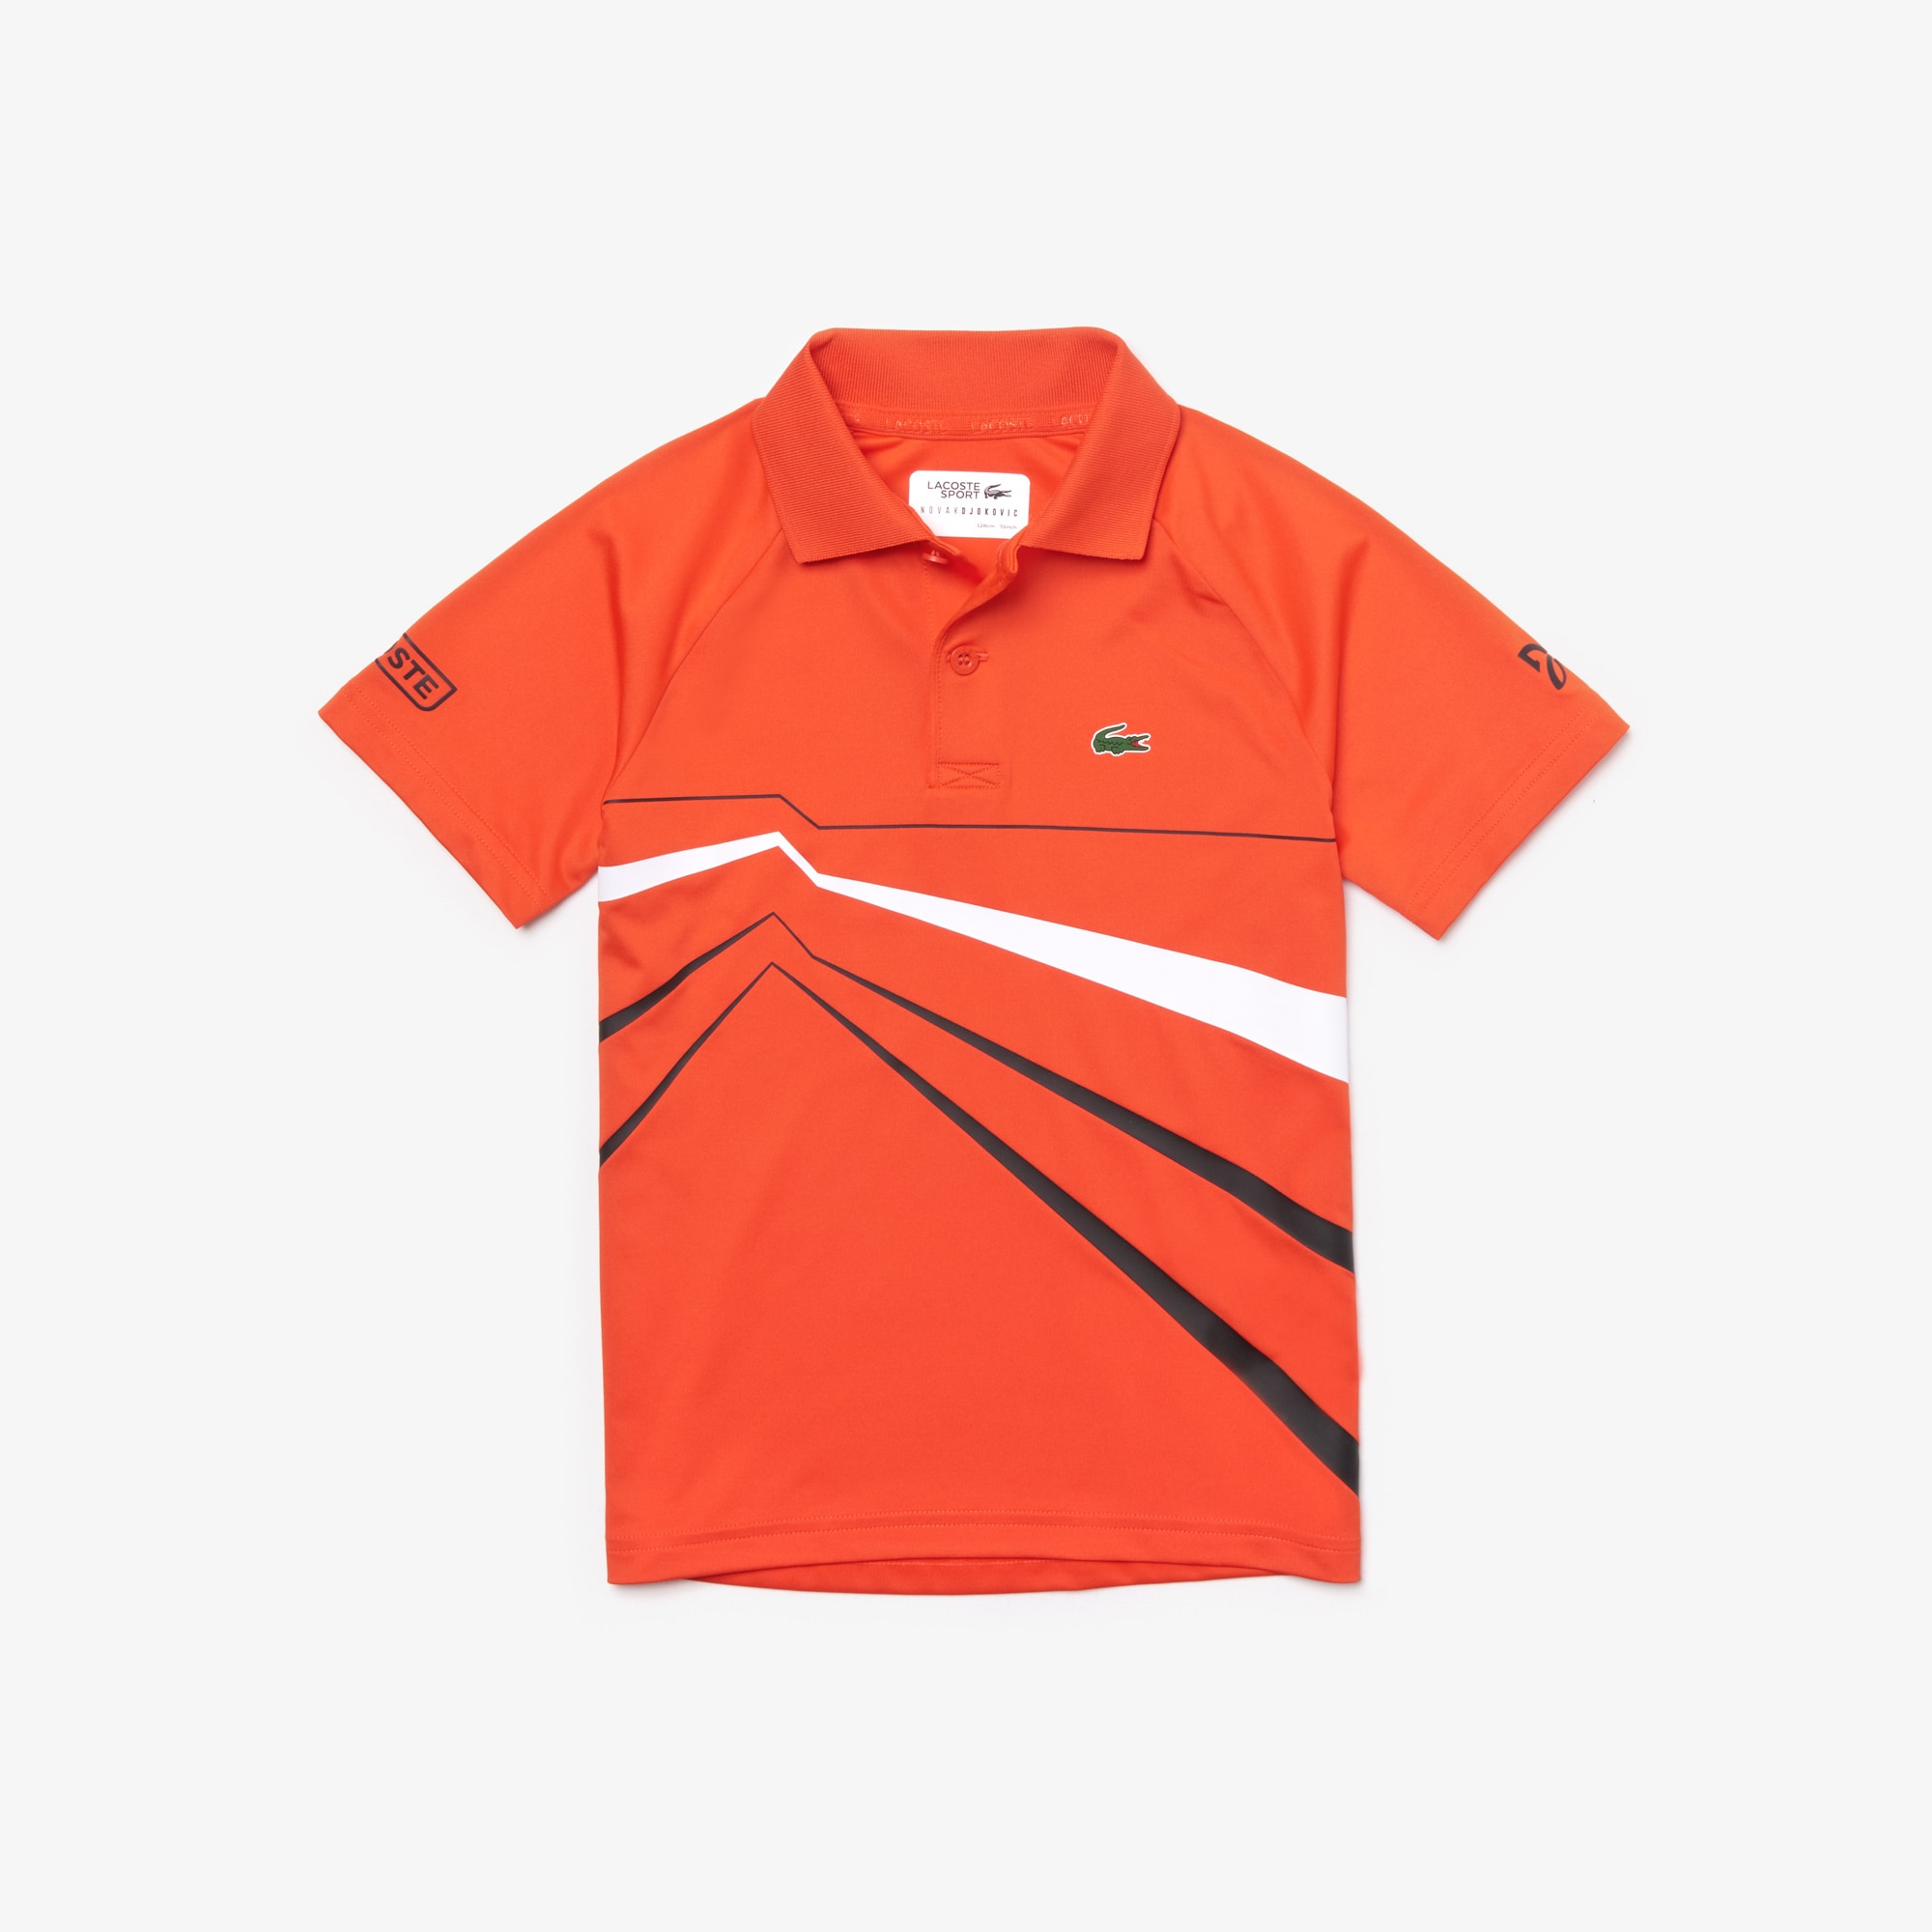 6387983b6d3c Boy's Polo Shirts | The Lacoste Polo For Kids | LACOSTE